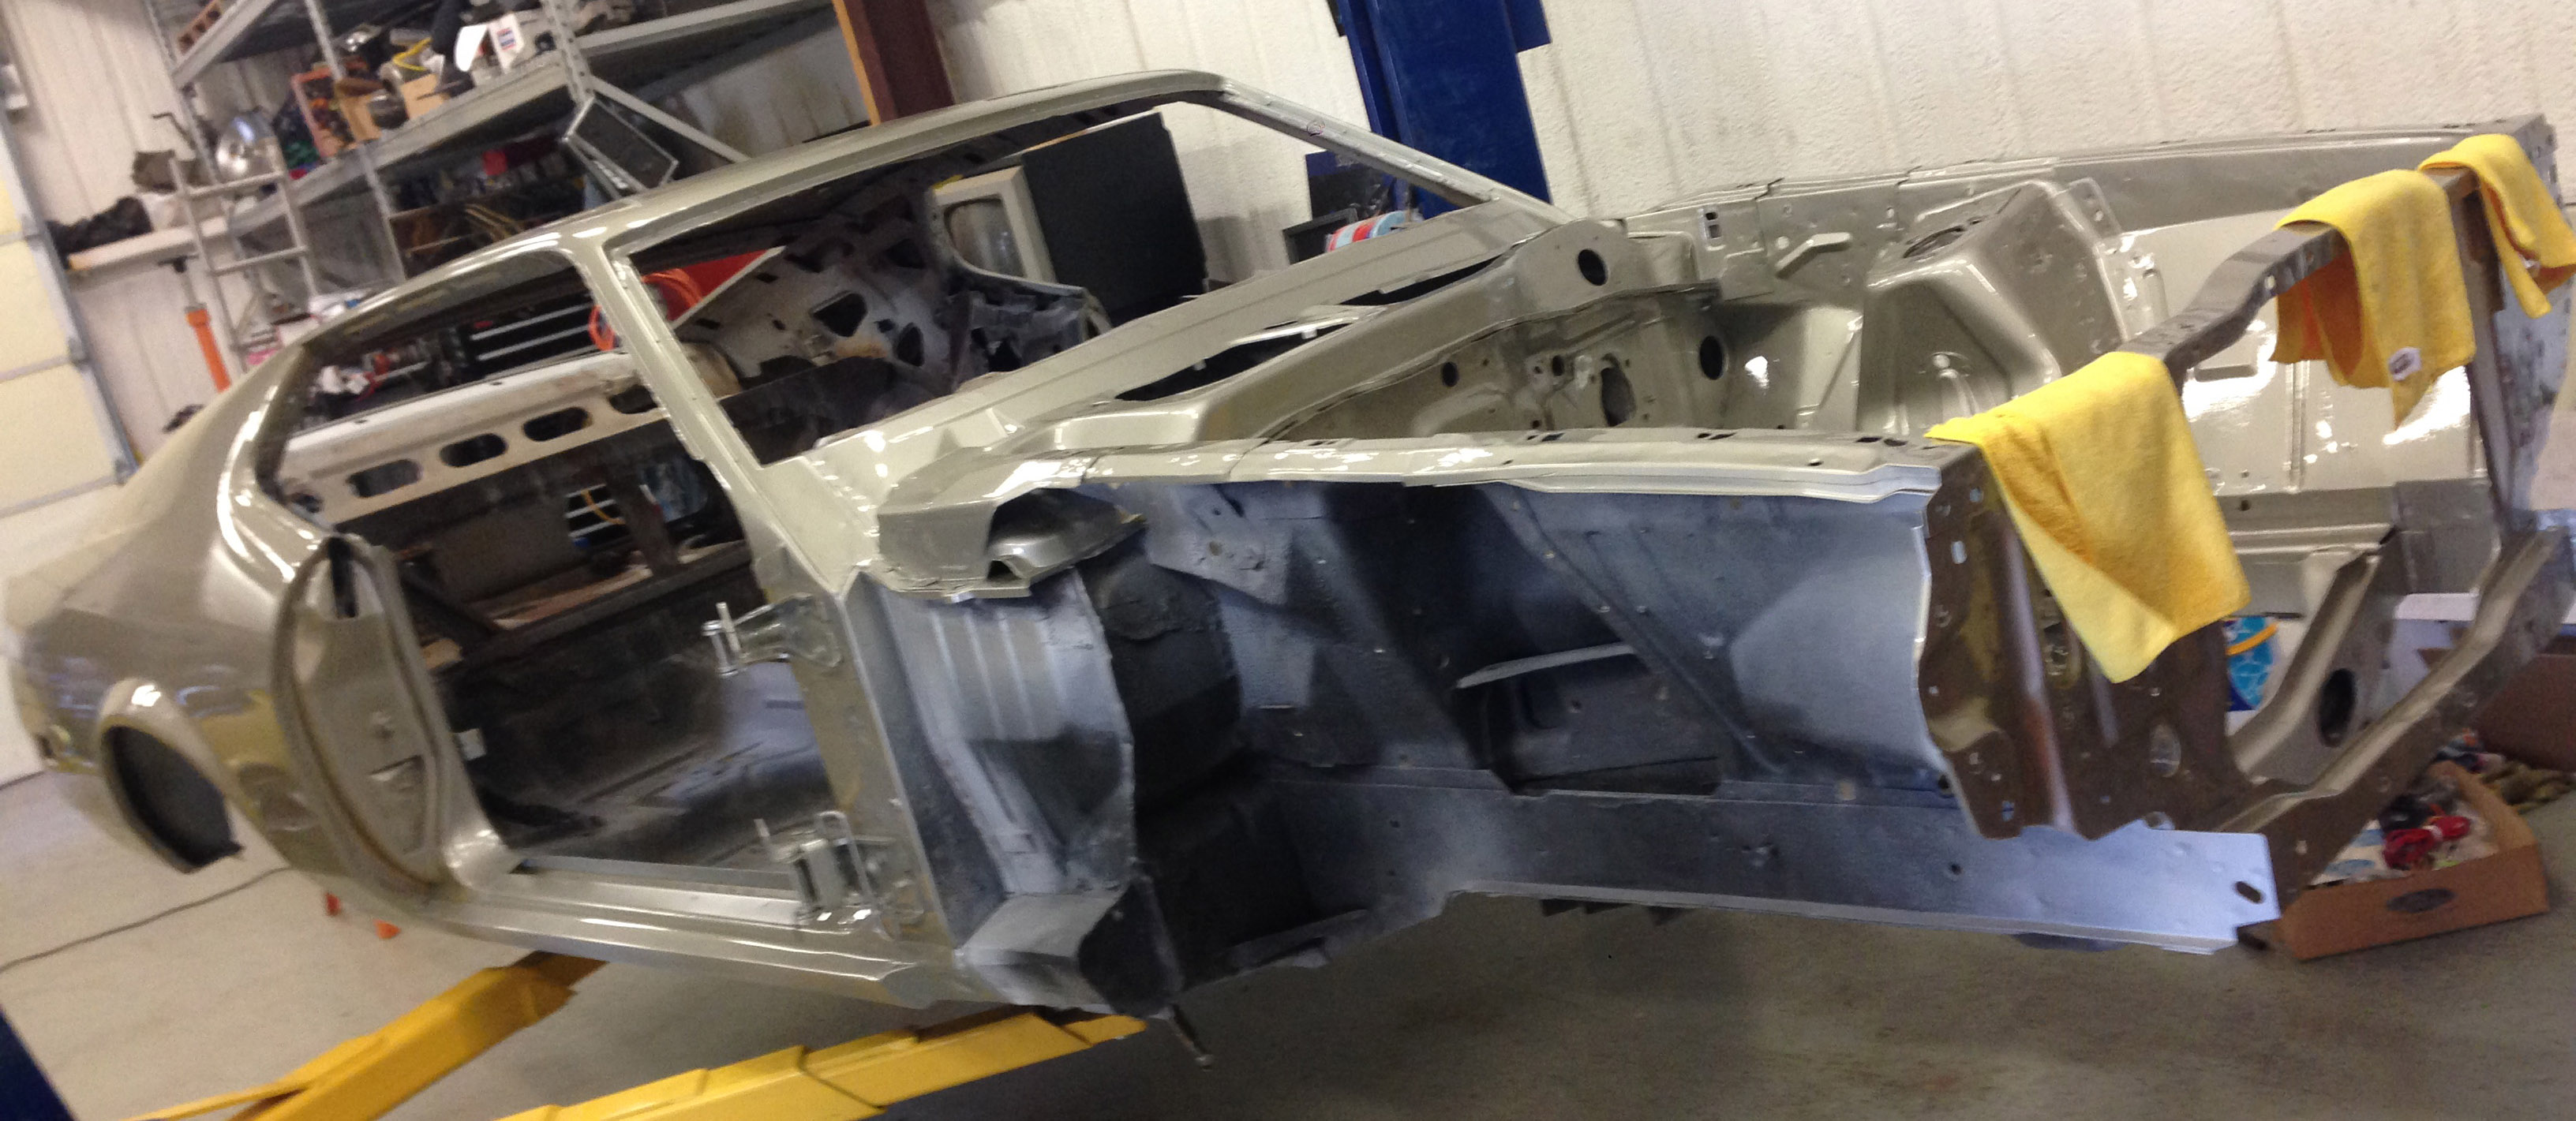 1971 Ford Mustang body work